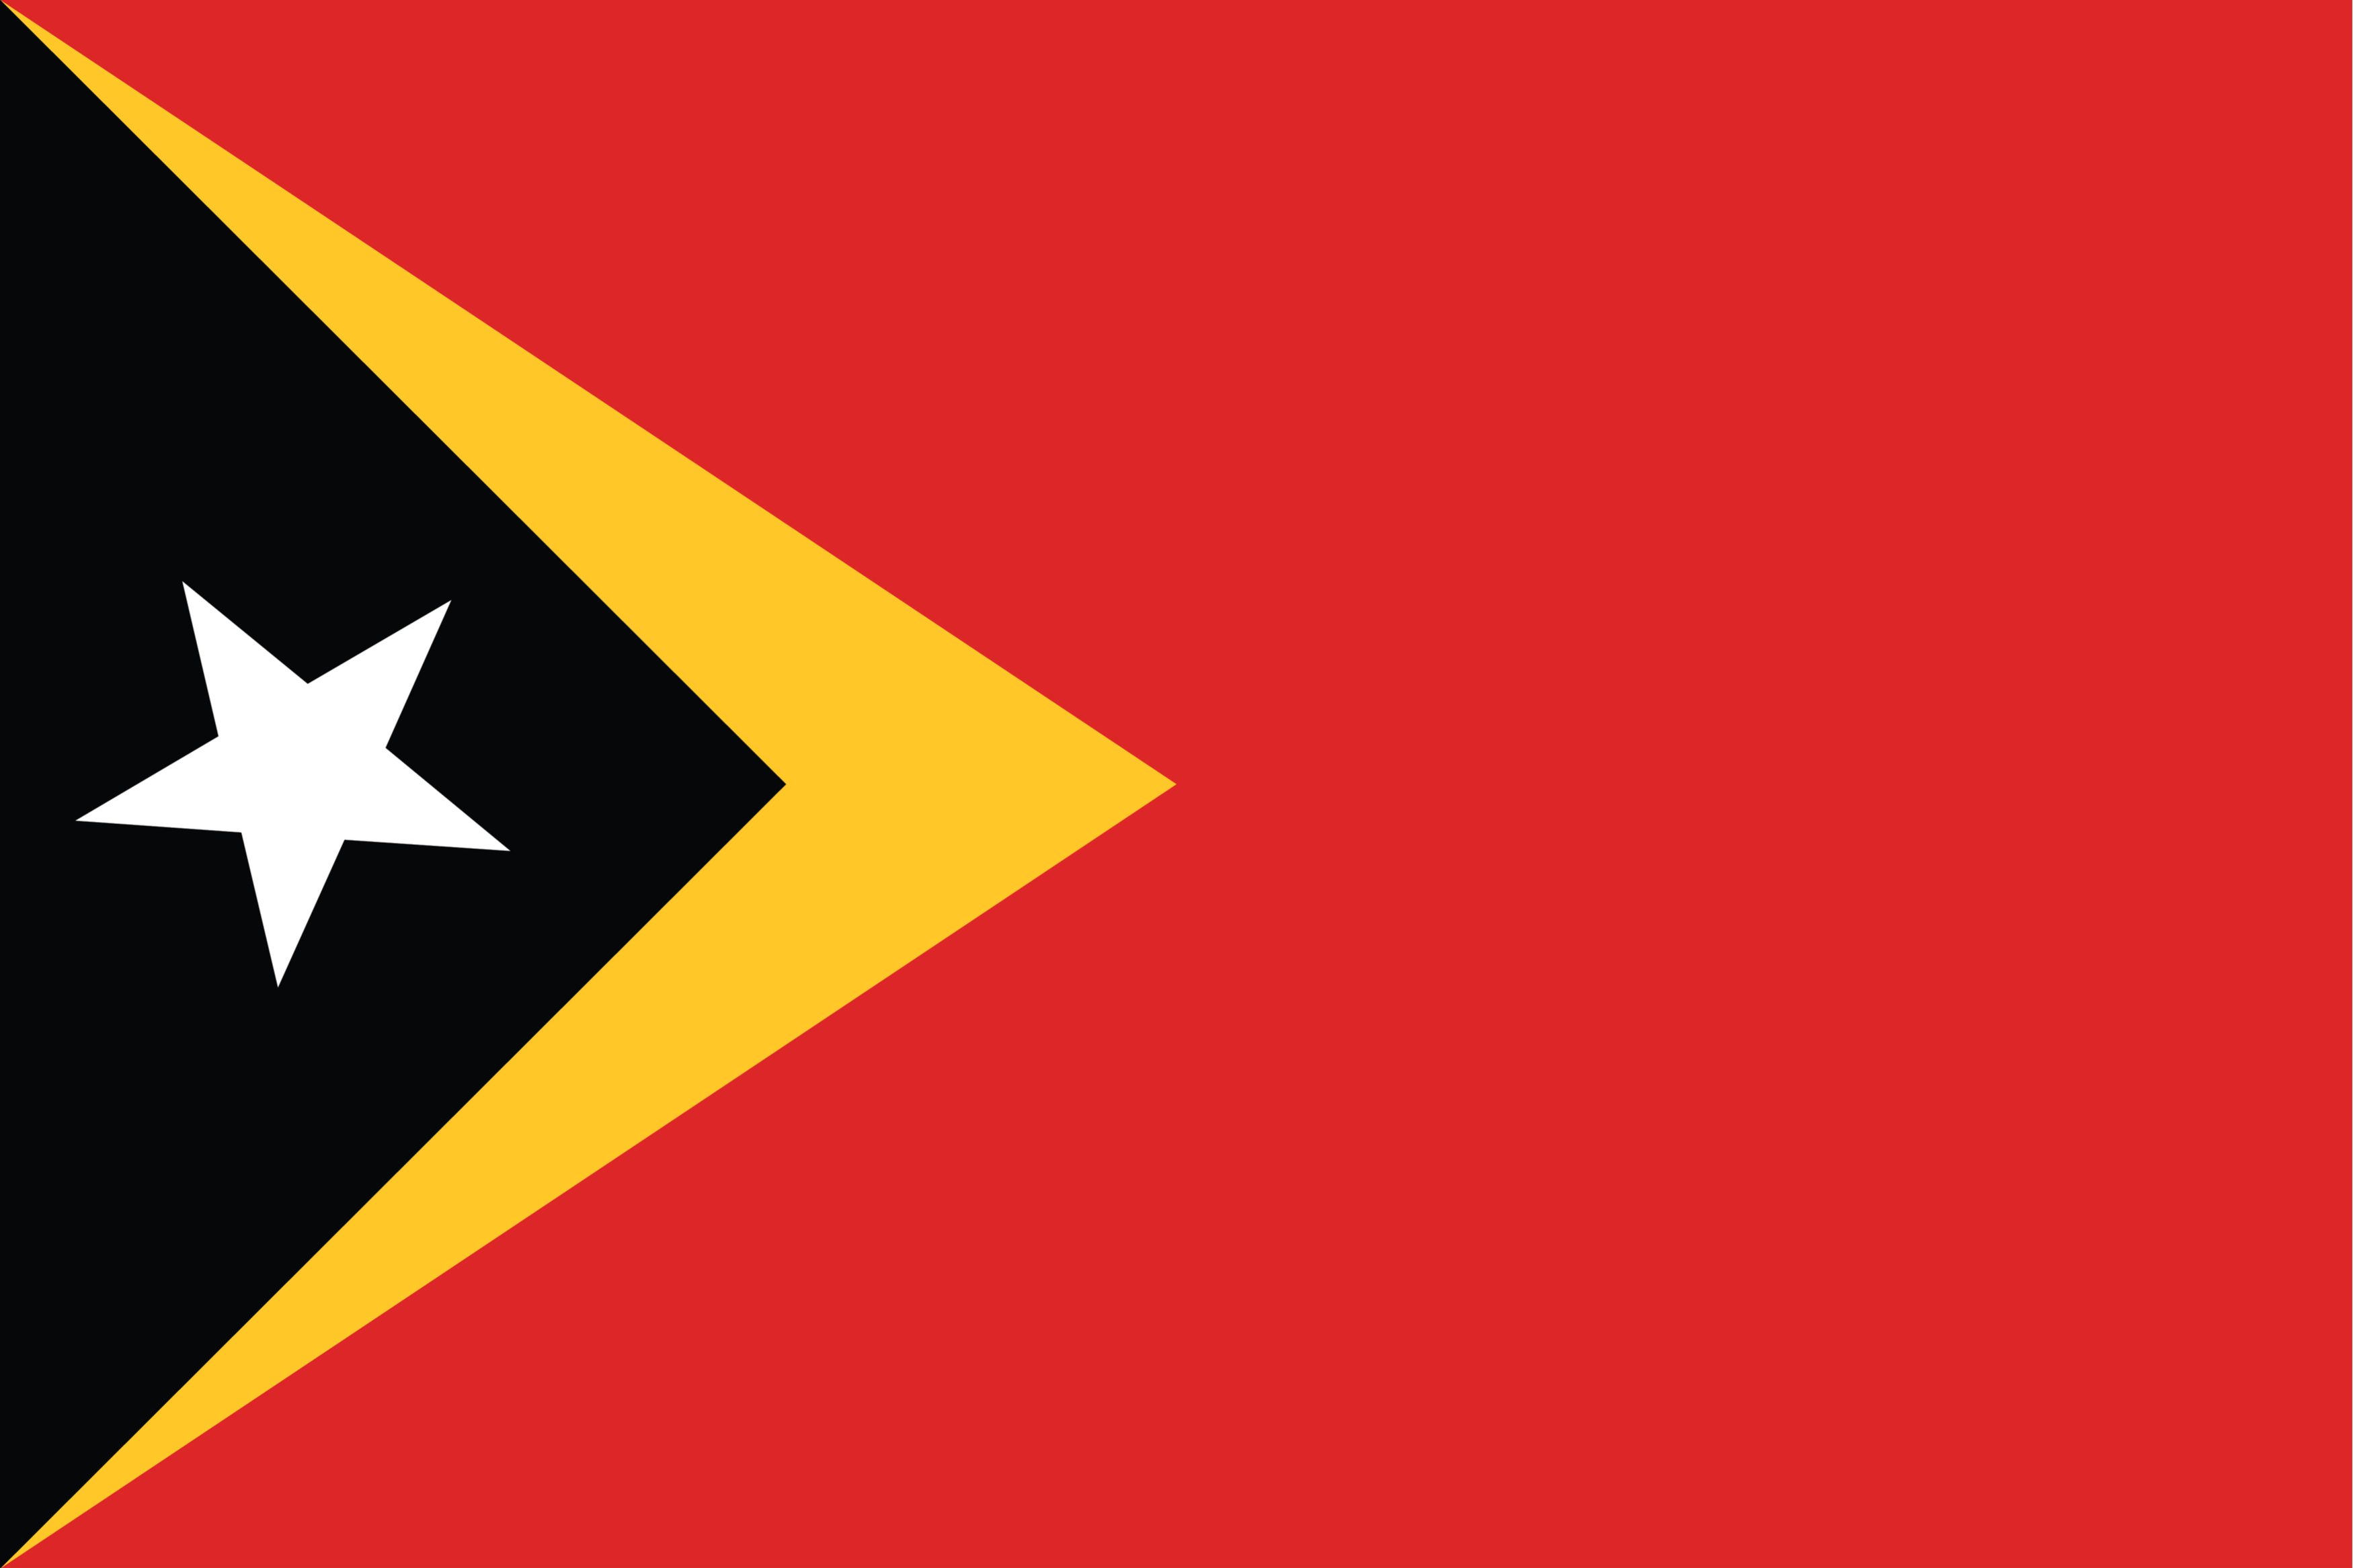 Flag of Timor-Leste